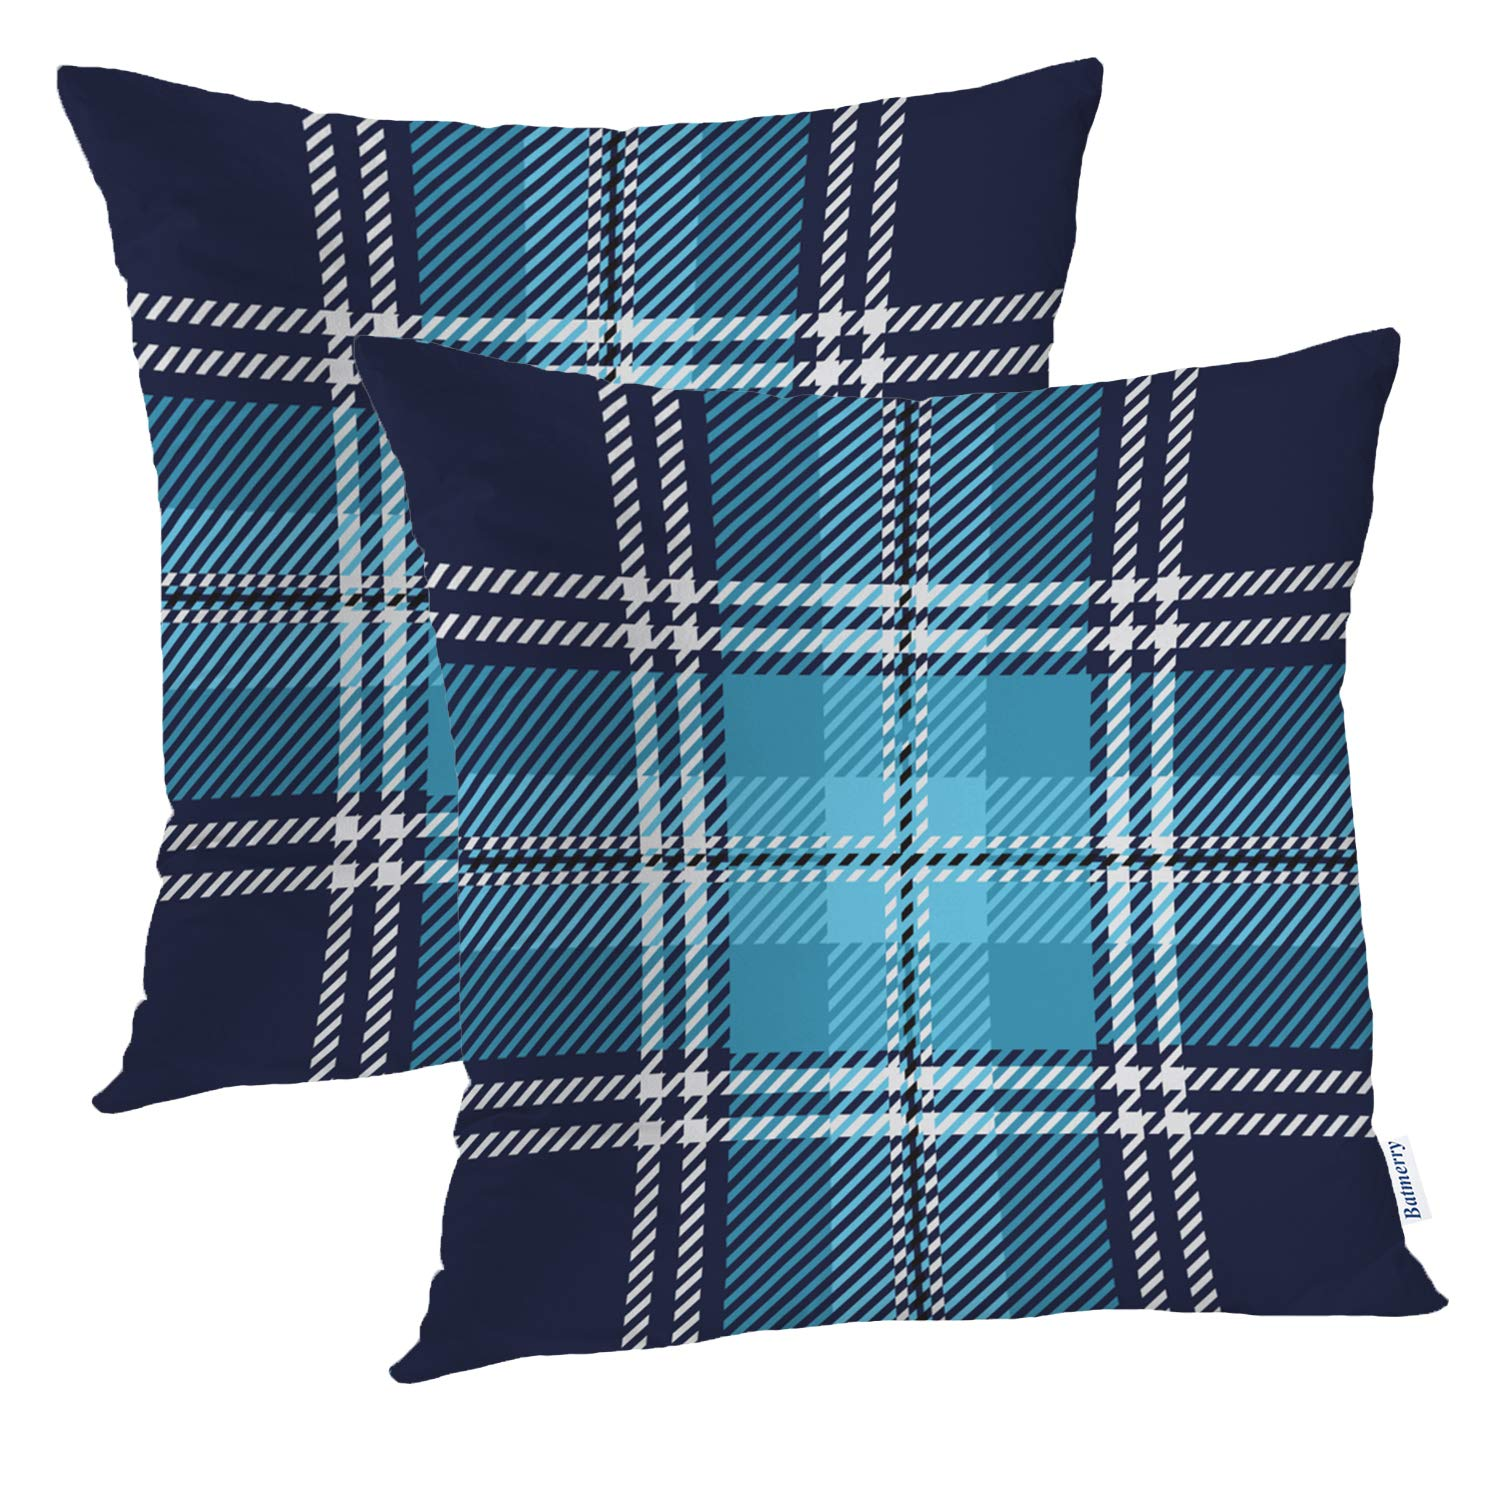 Sensational Batmerry Checkered Pillow Covers 18X18 Inch Set Of 2 Blue And White Checkered Fabric Design Double Sided Decorative Pillows Cases Throw Pillows Ibusinesslaw Wood Chair Design Ideas Ibusinesslaworg